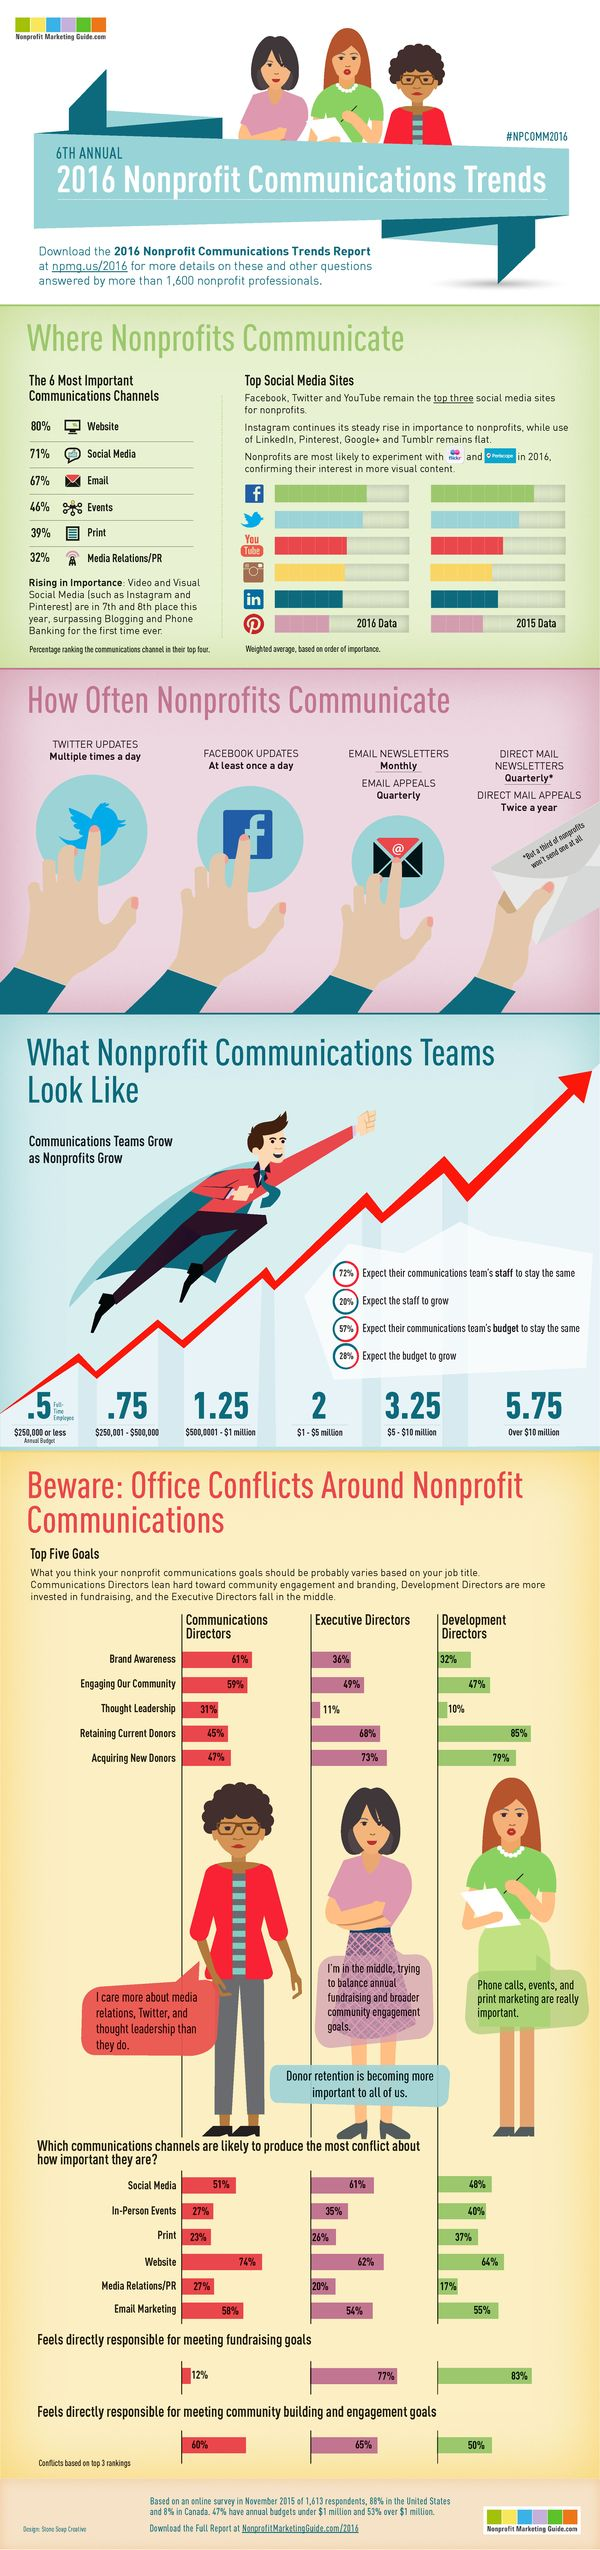 Infographic-2016-Nonprofit-Communications-Trends